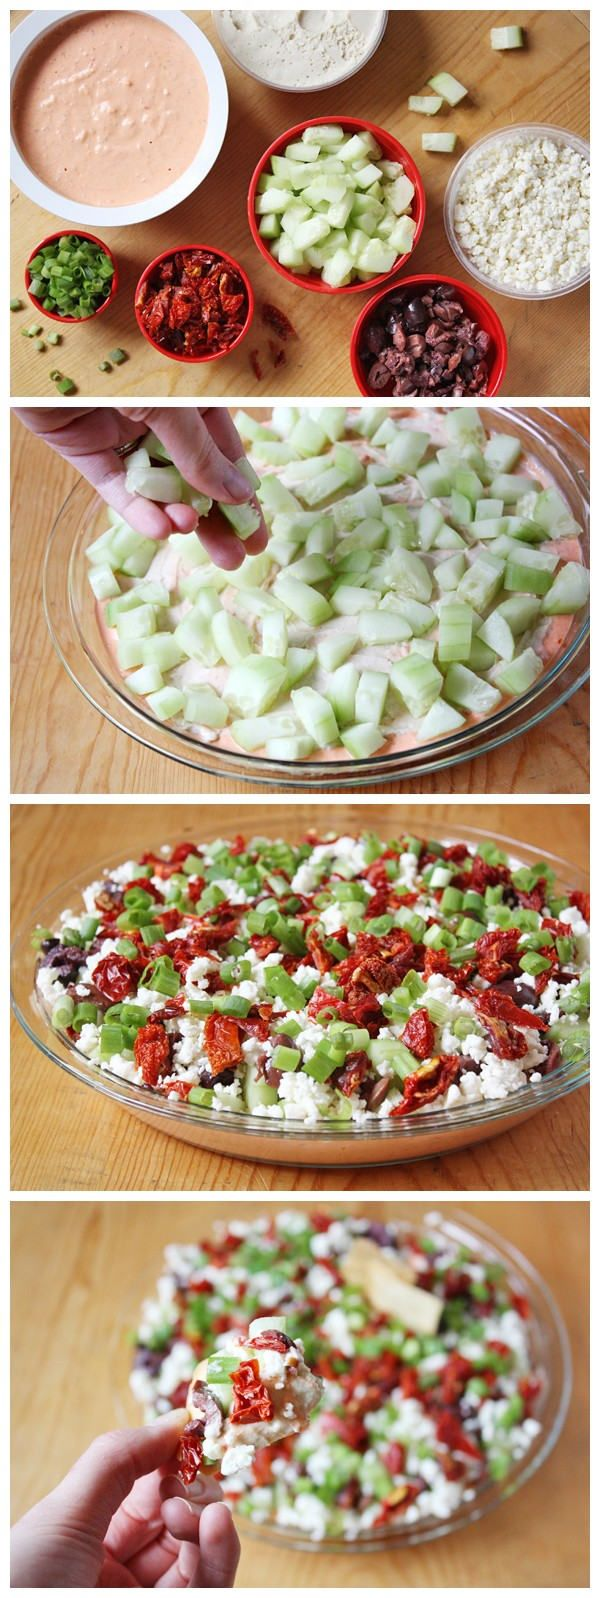 Greek 7-Layer Dip...I wouldn't do the olives but sounds yummy!